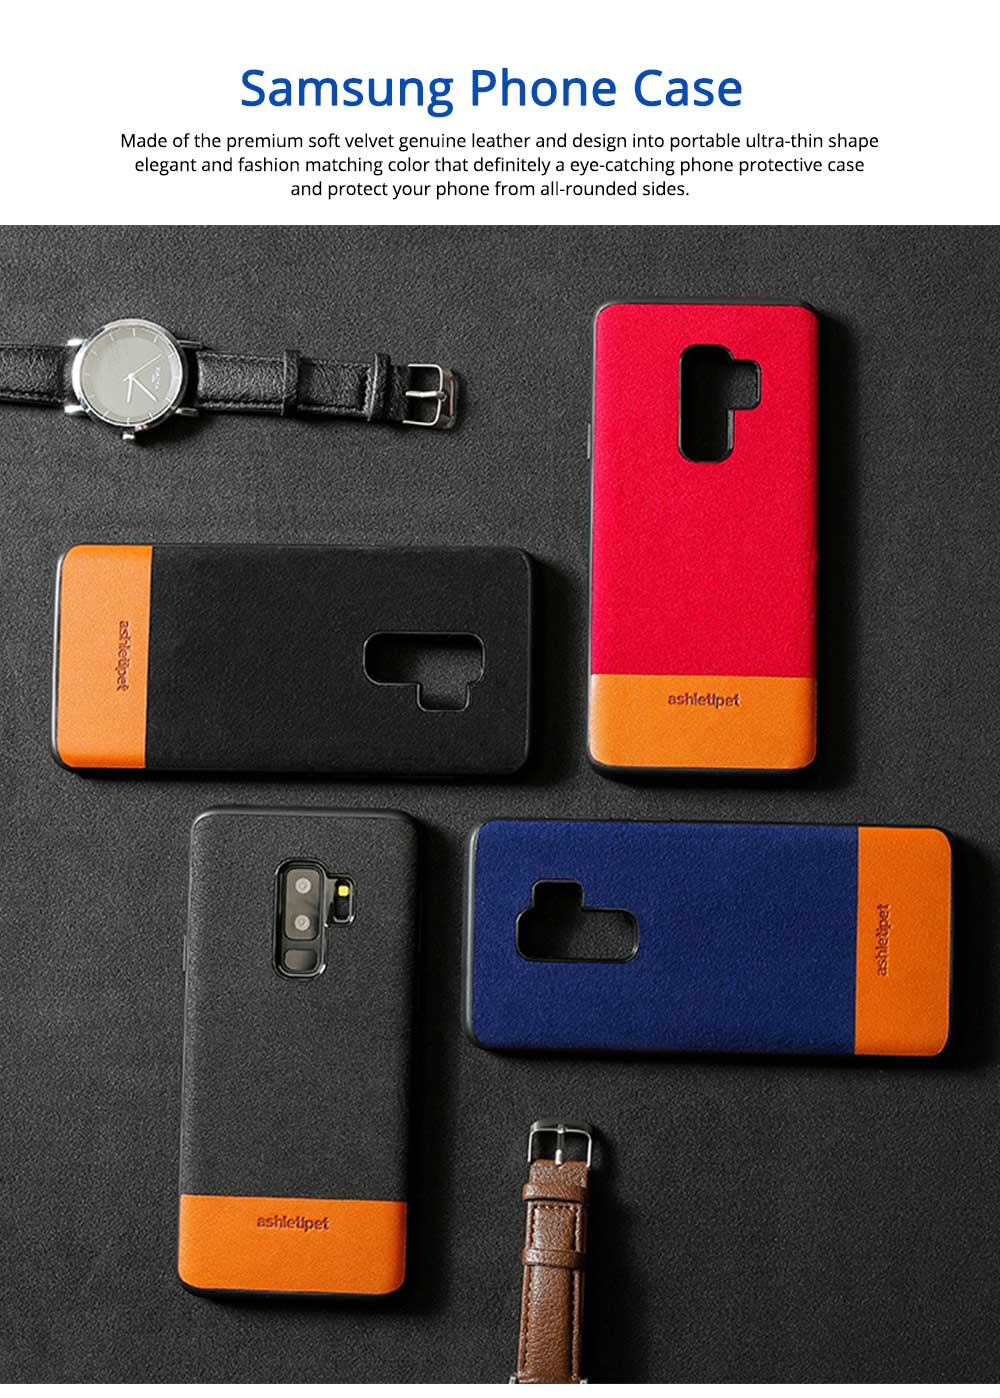 Samsung Genuine Leather Case, Creative Color Matching Elegant Phone Protective Case for Samsung note8, S7 edge, S9 0